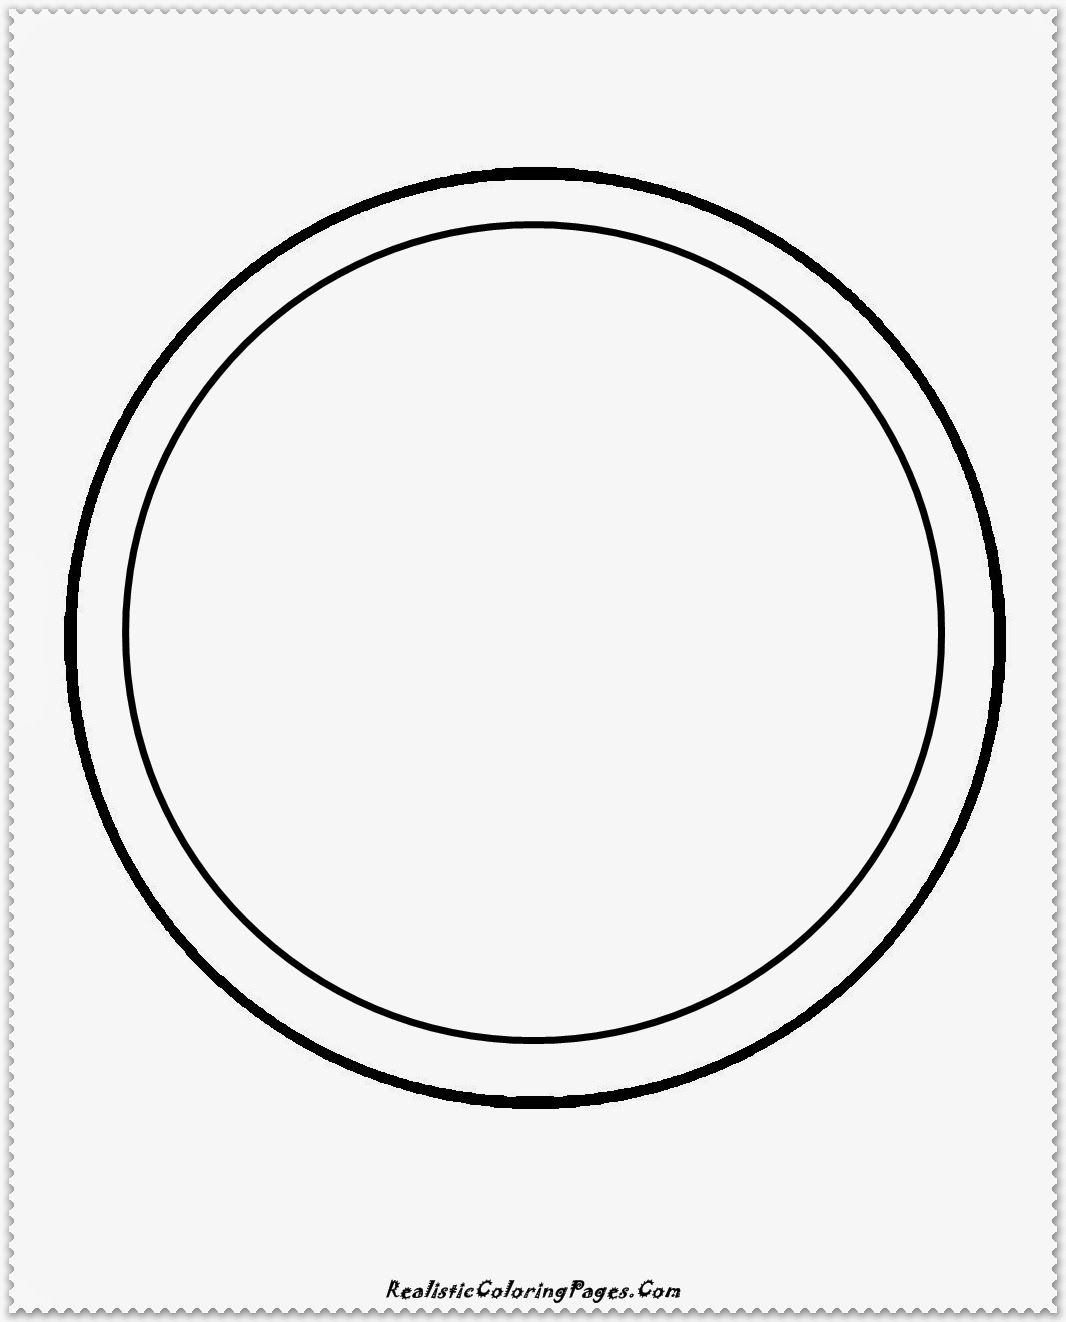 simple circle coloring pages